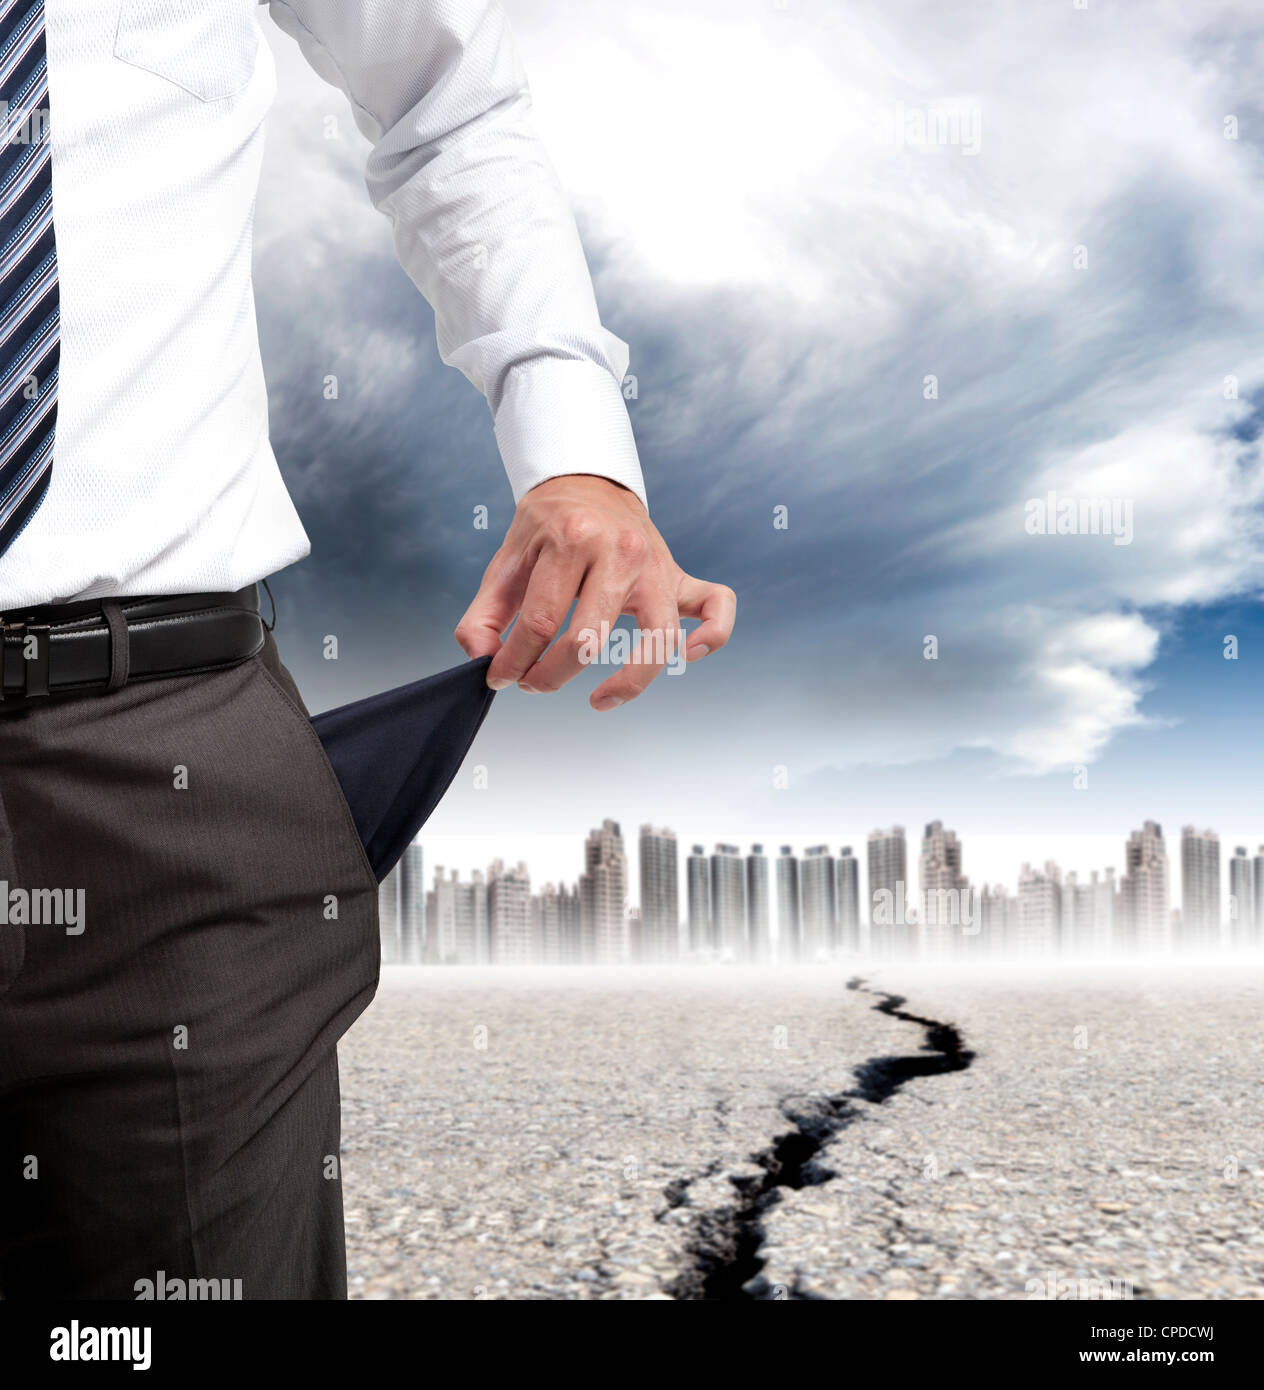 business man showing his empty pockets and financial crisis concept - Stock Image